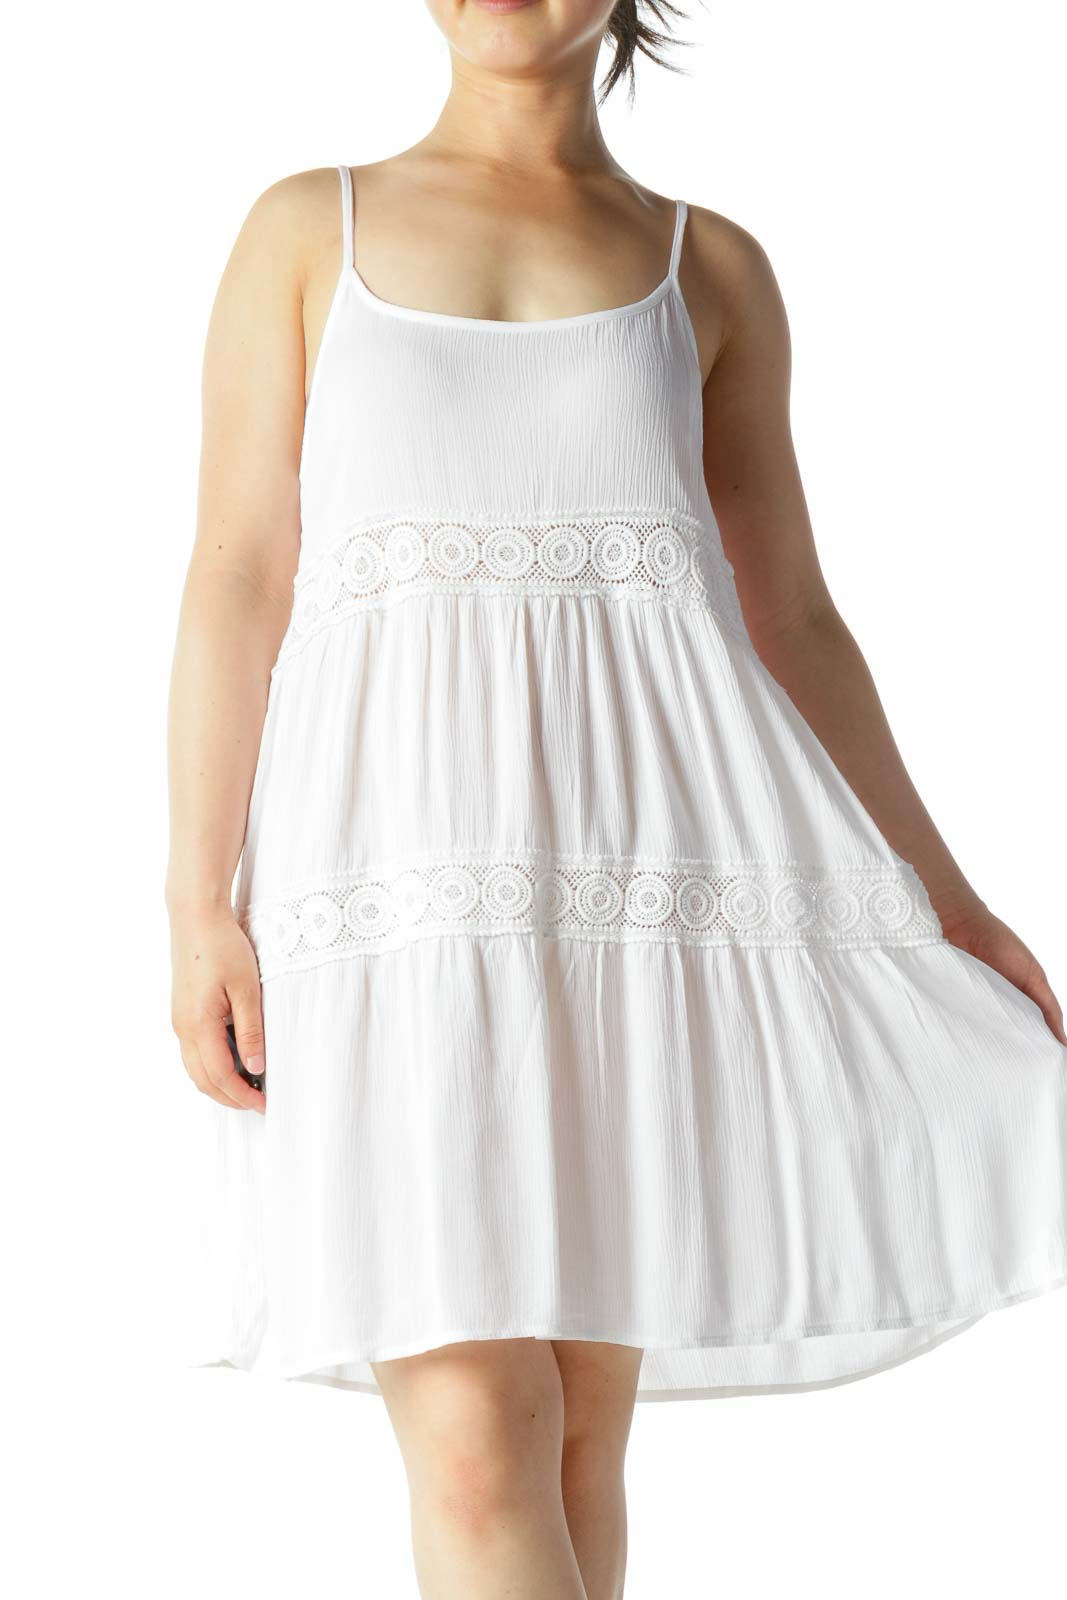 White Spaghetti Straps Knit Accent Flared Top Front